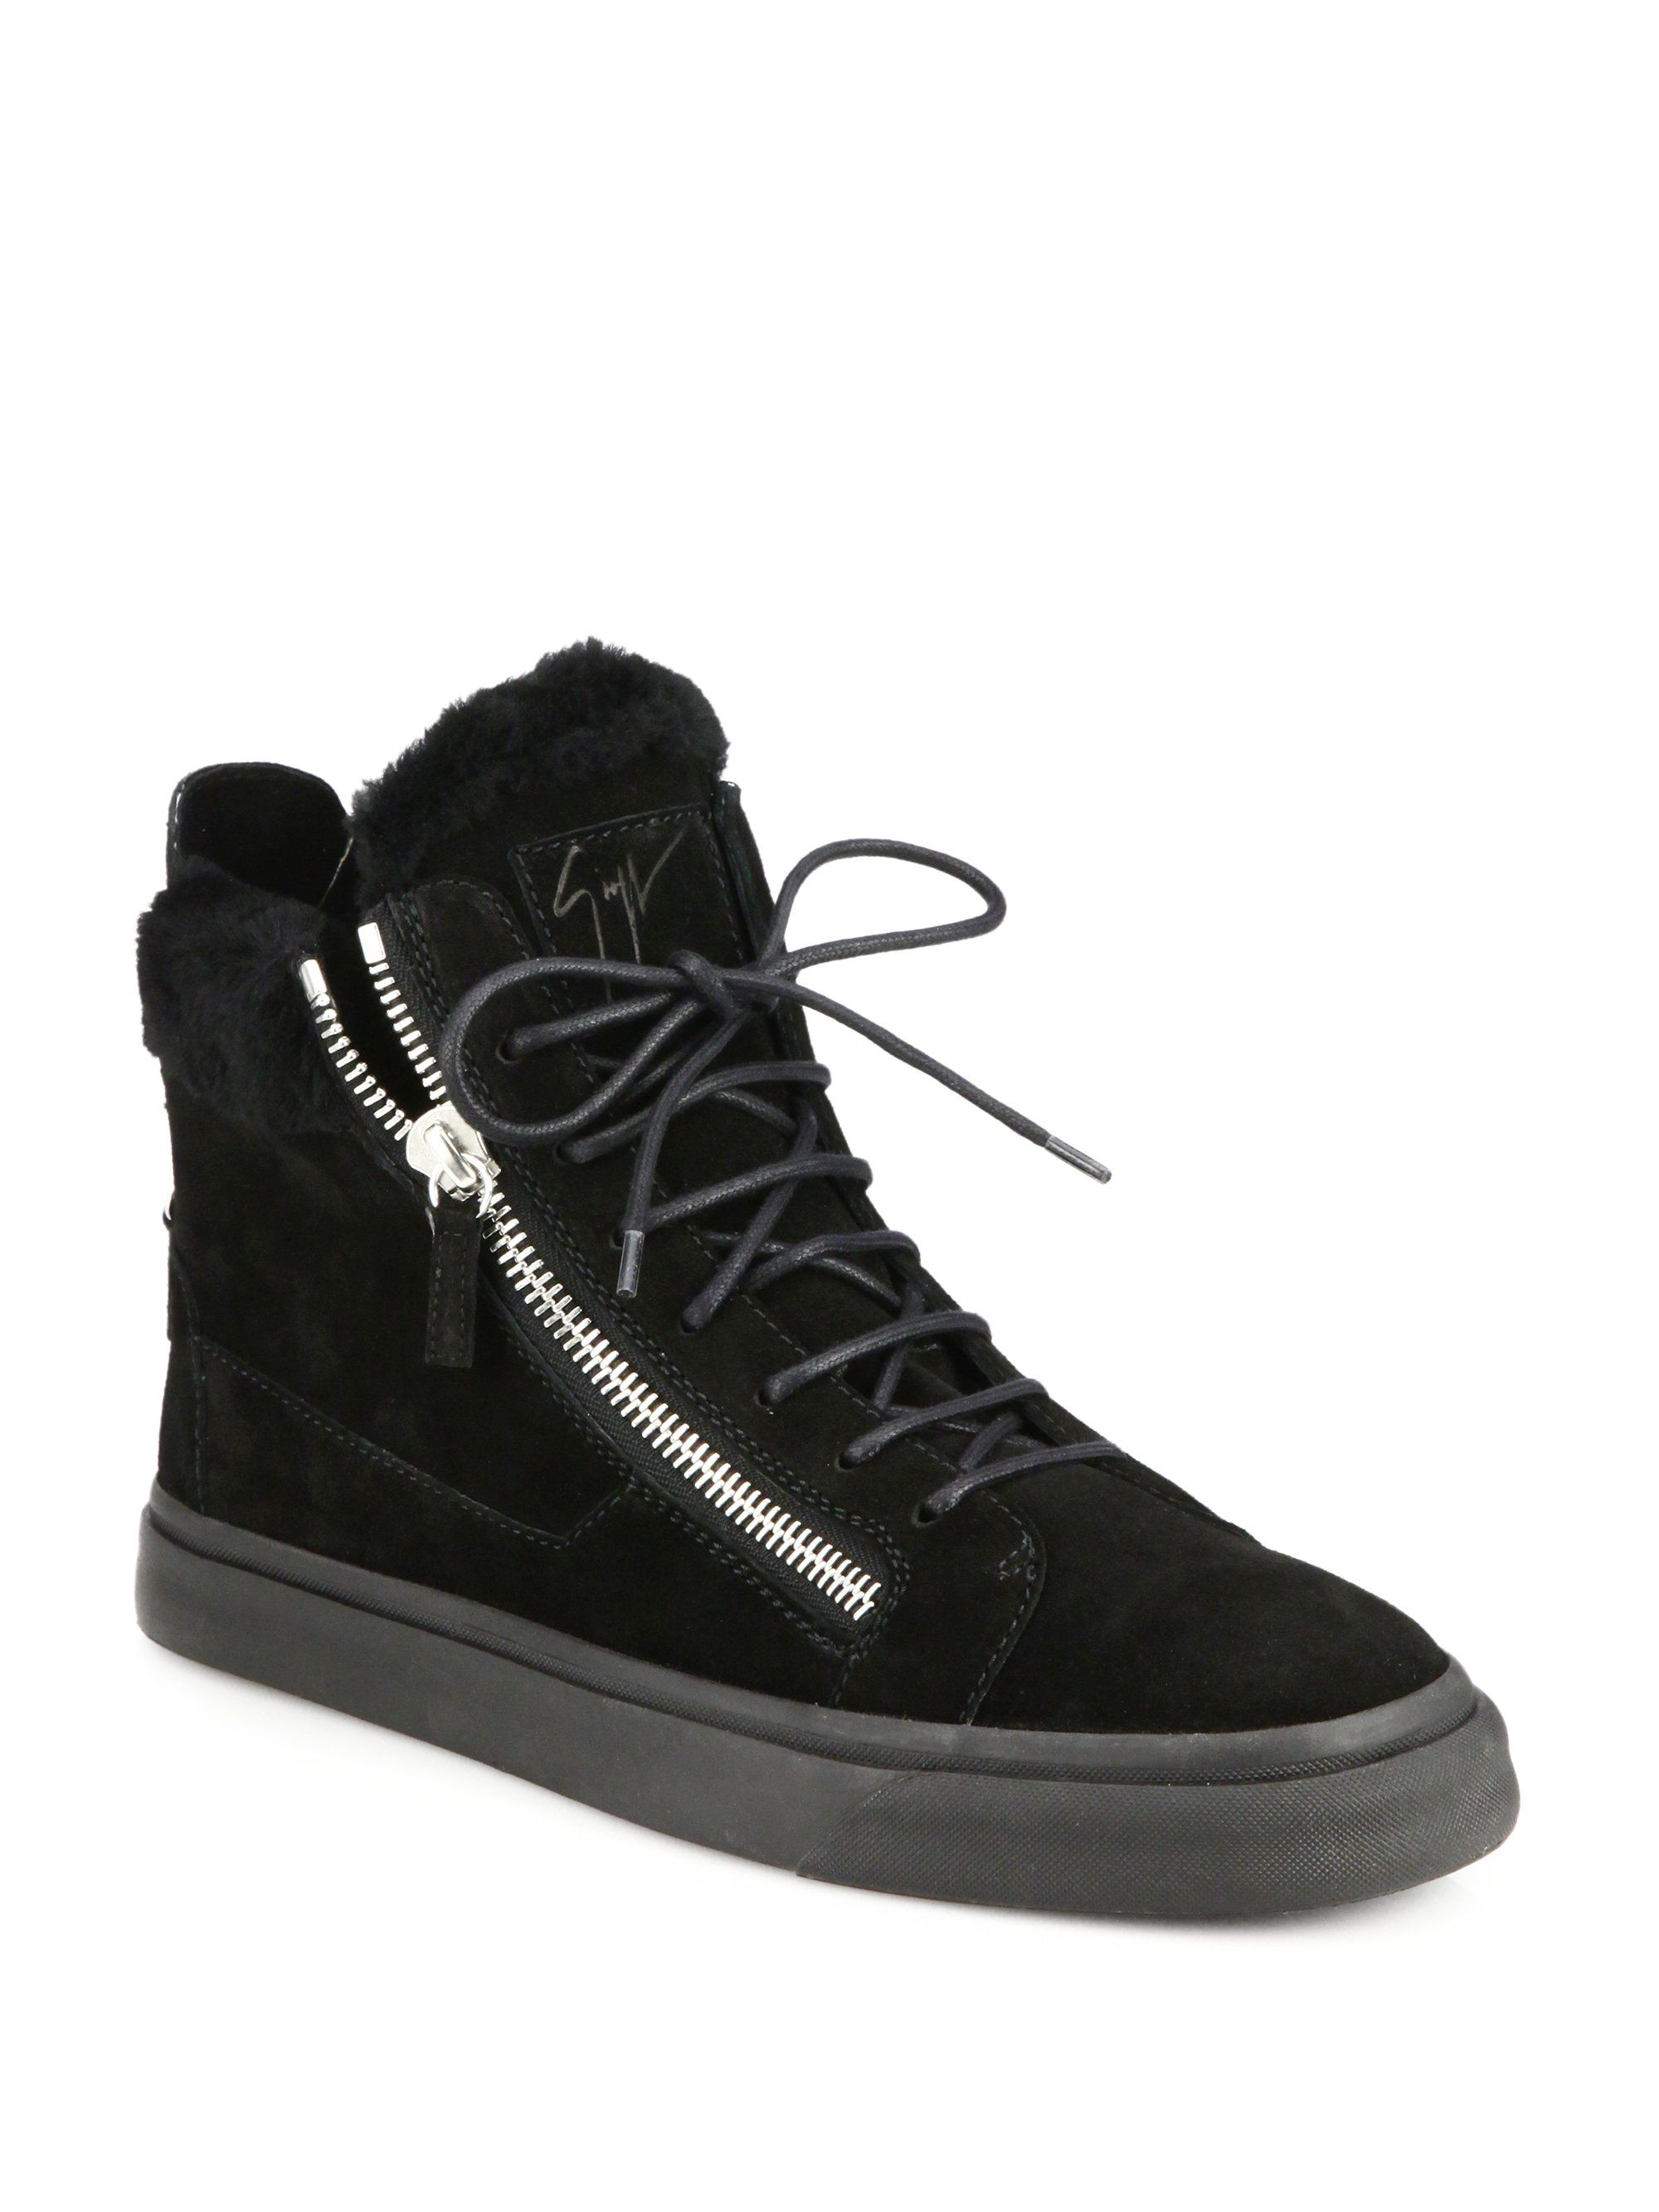 Mens Suede & Leather Double-Zip Mid-Top Sneakers Giuseppe Zanotti